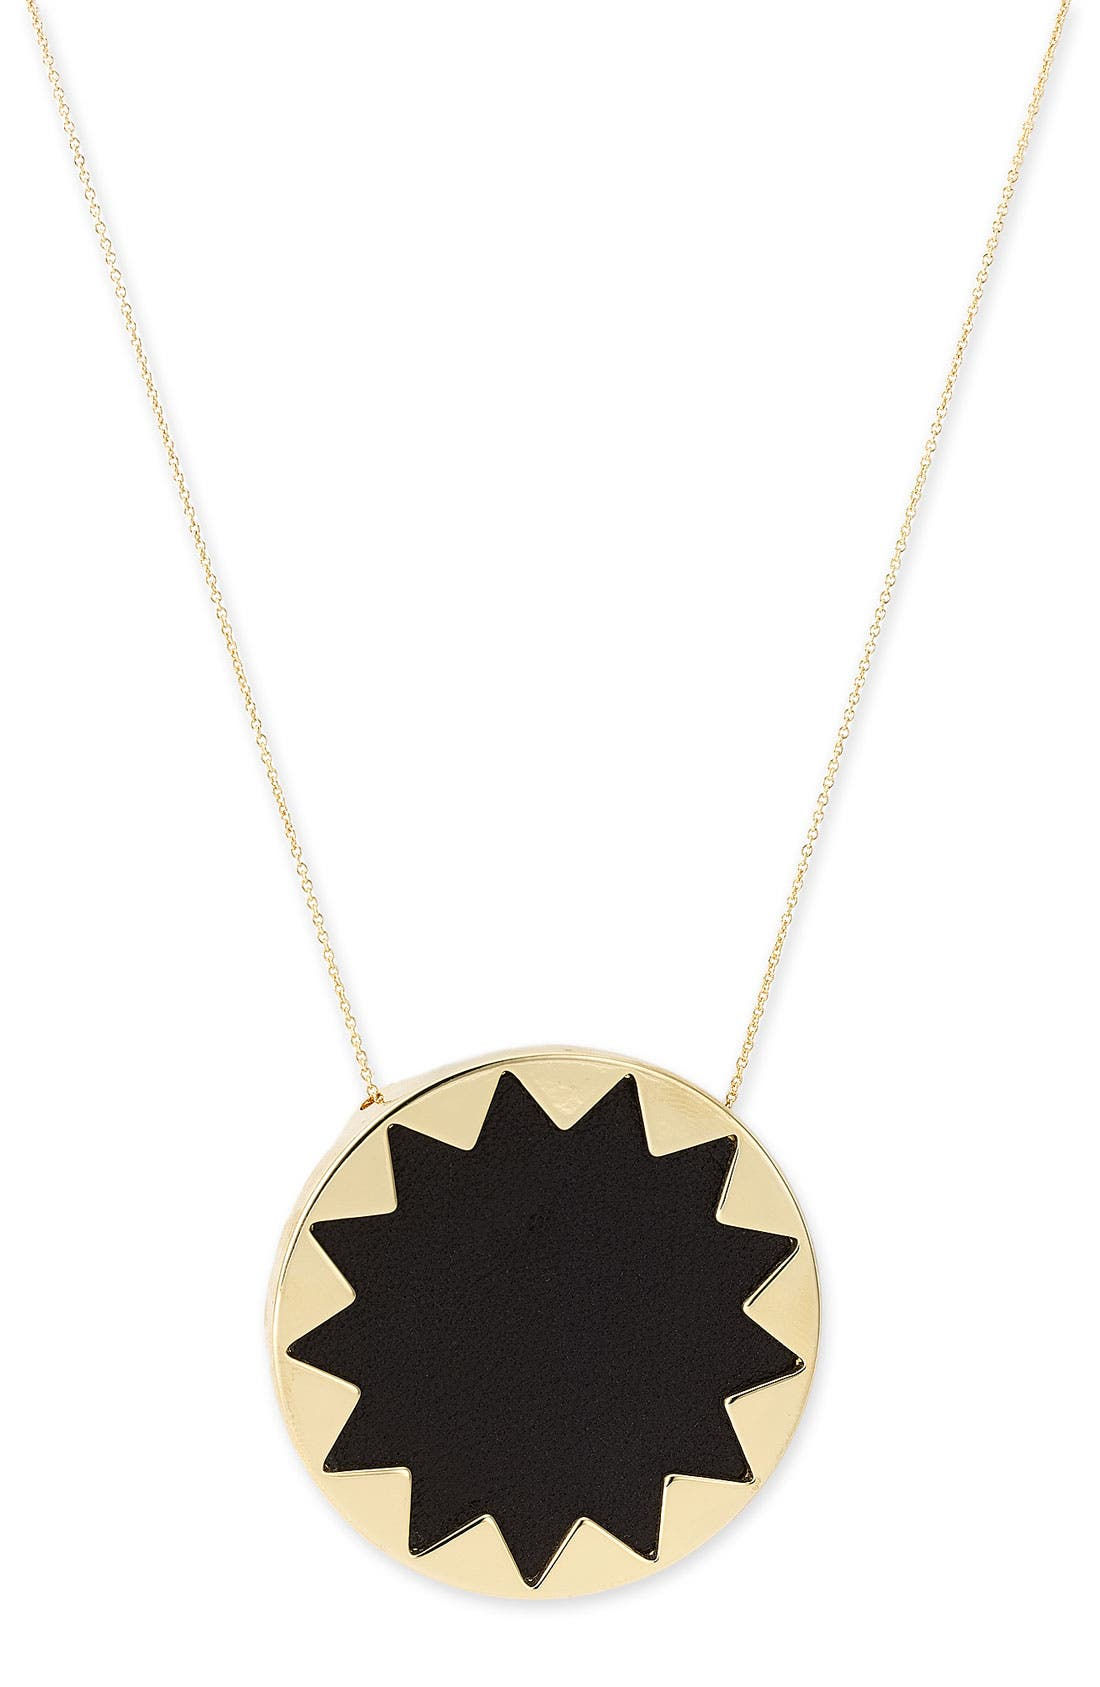 Main Image - House of Harlow 1960 Sunburst Pendant Necklace